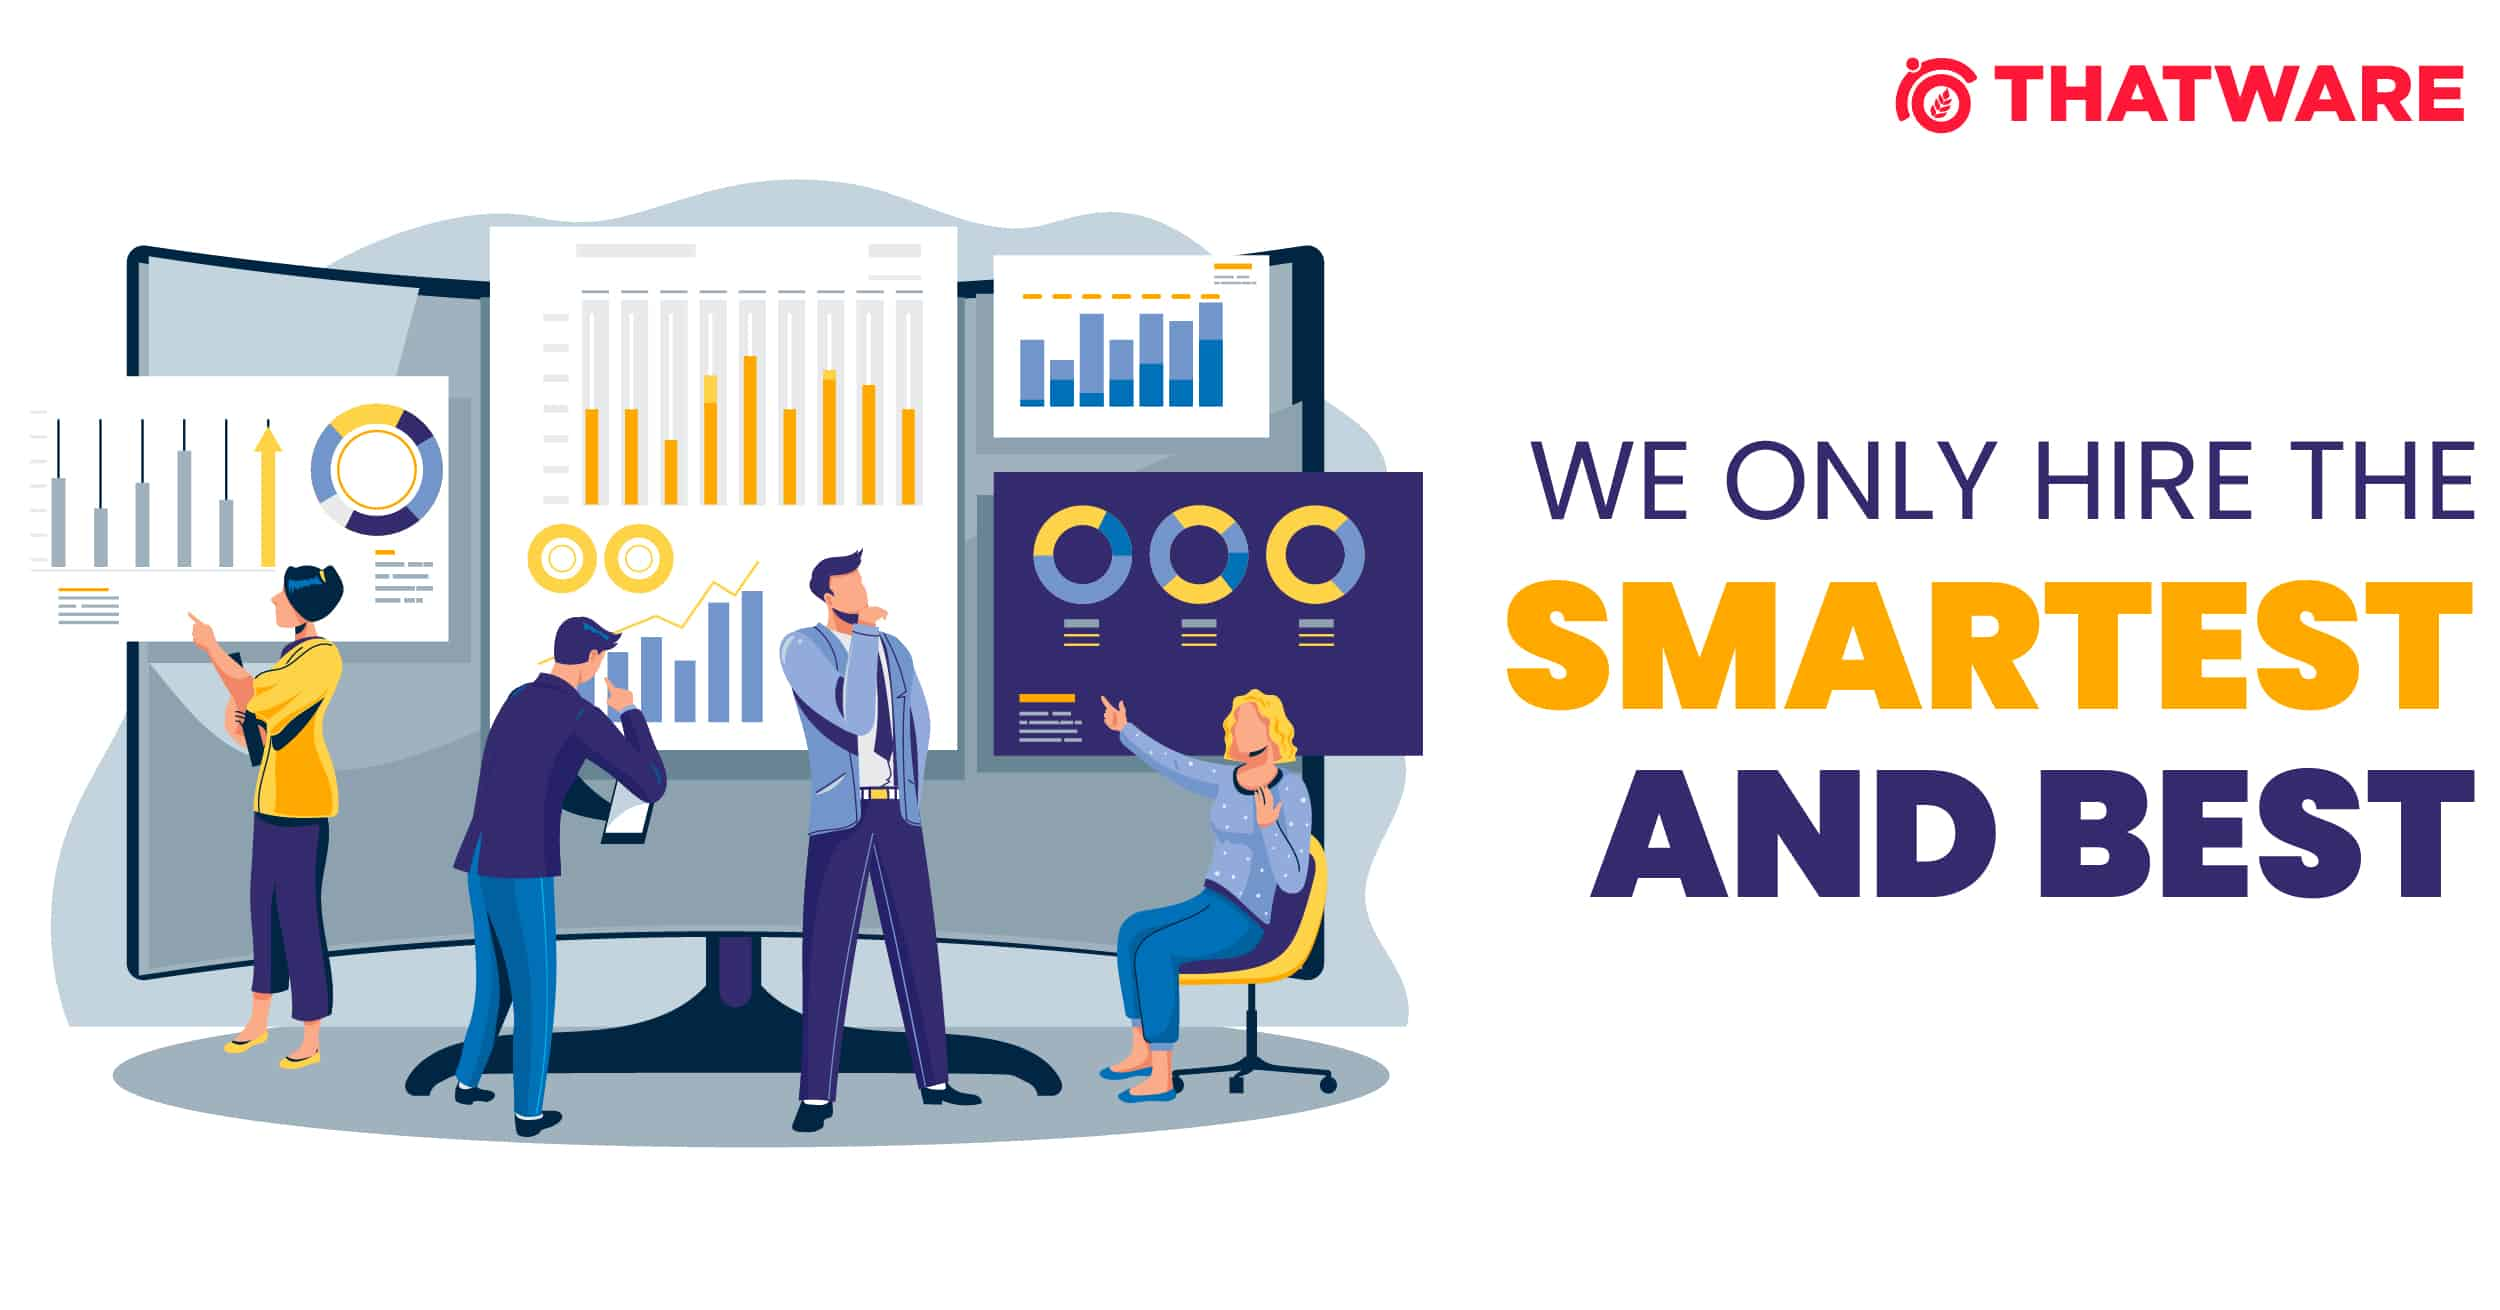 HIRE THE SMARTEST AND BEST